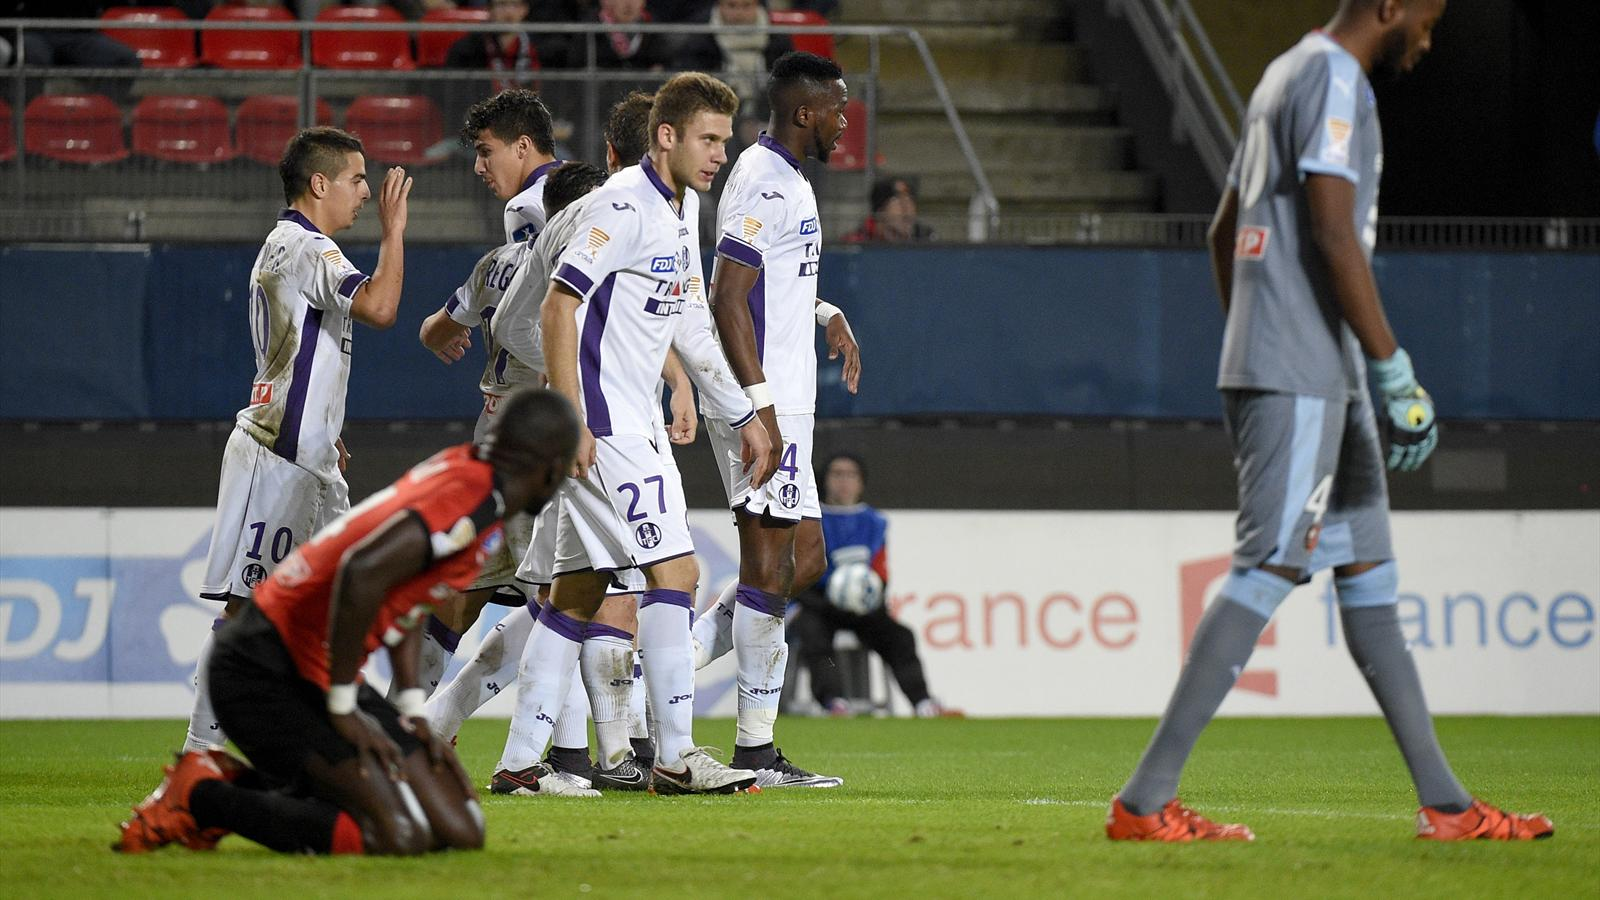 Ben yedder porte toulouse rennes guingamp arrache son billet pour les quarts face nice - Billet coupe de la ligue 2015 ...